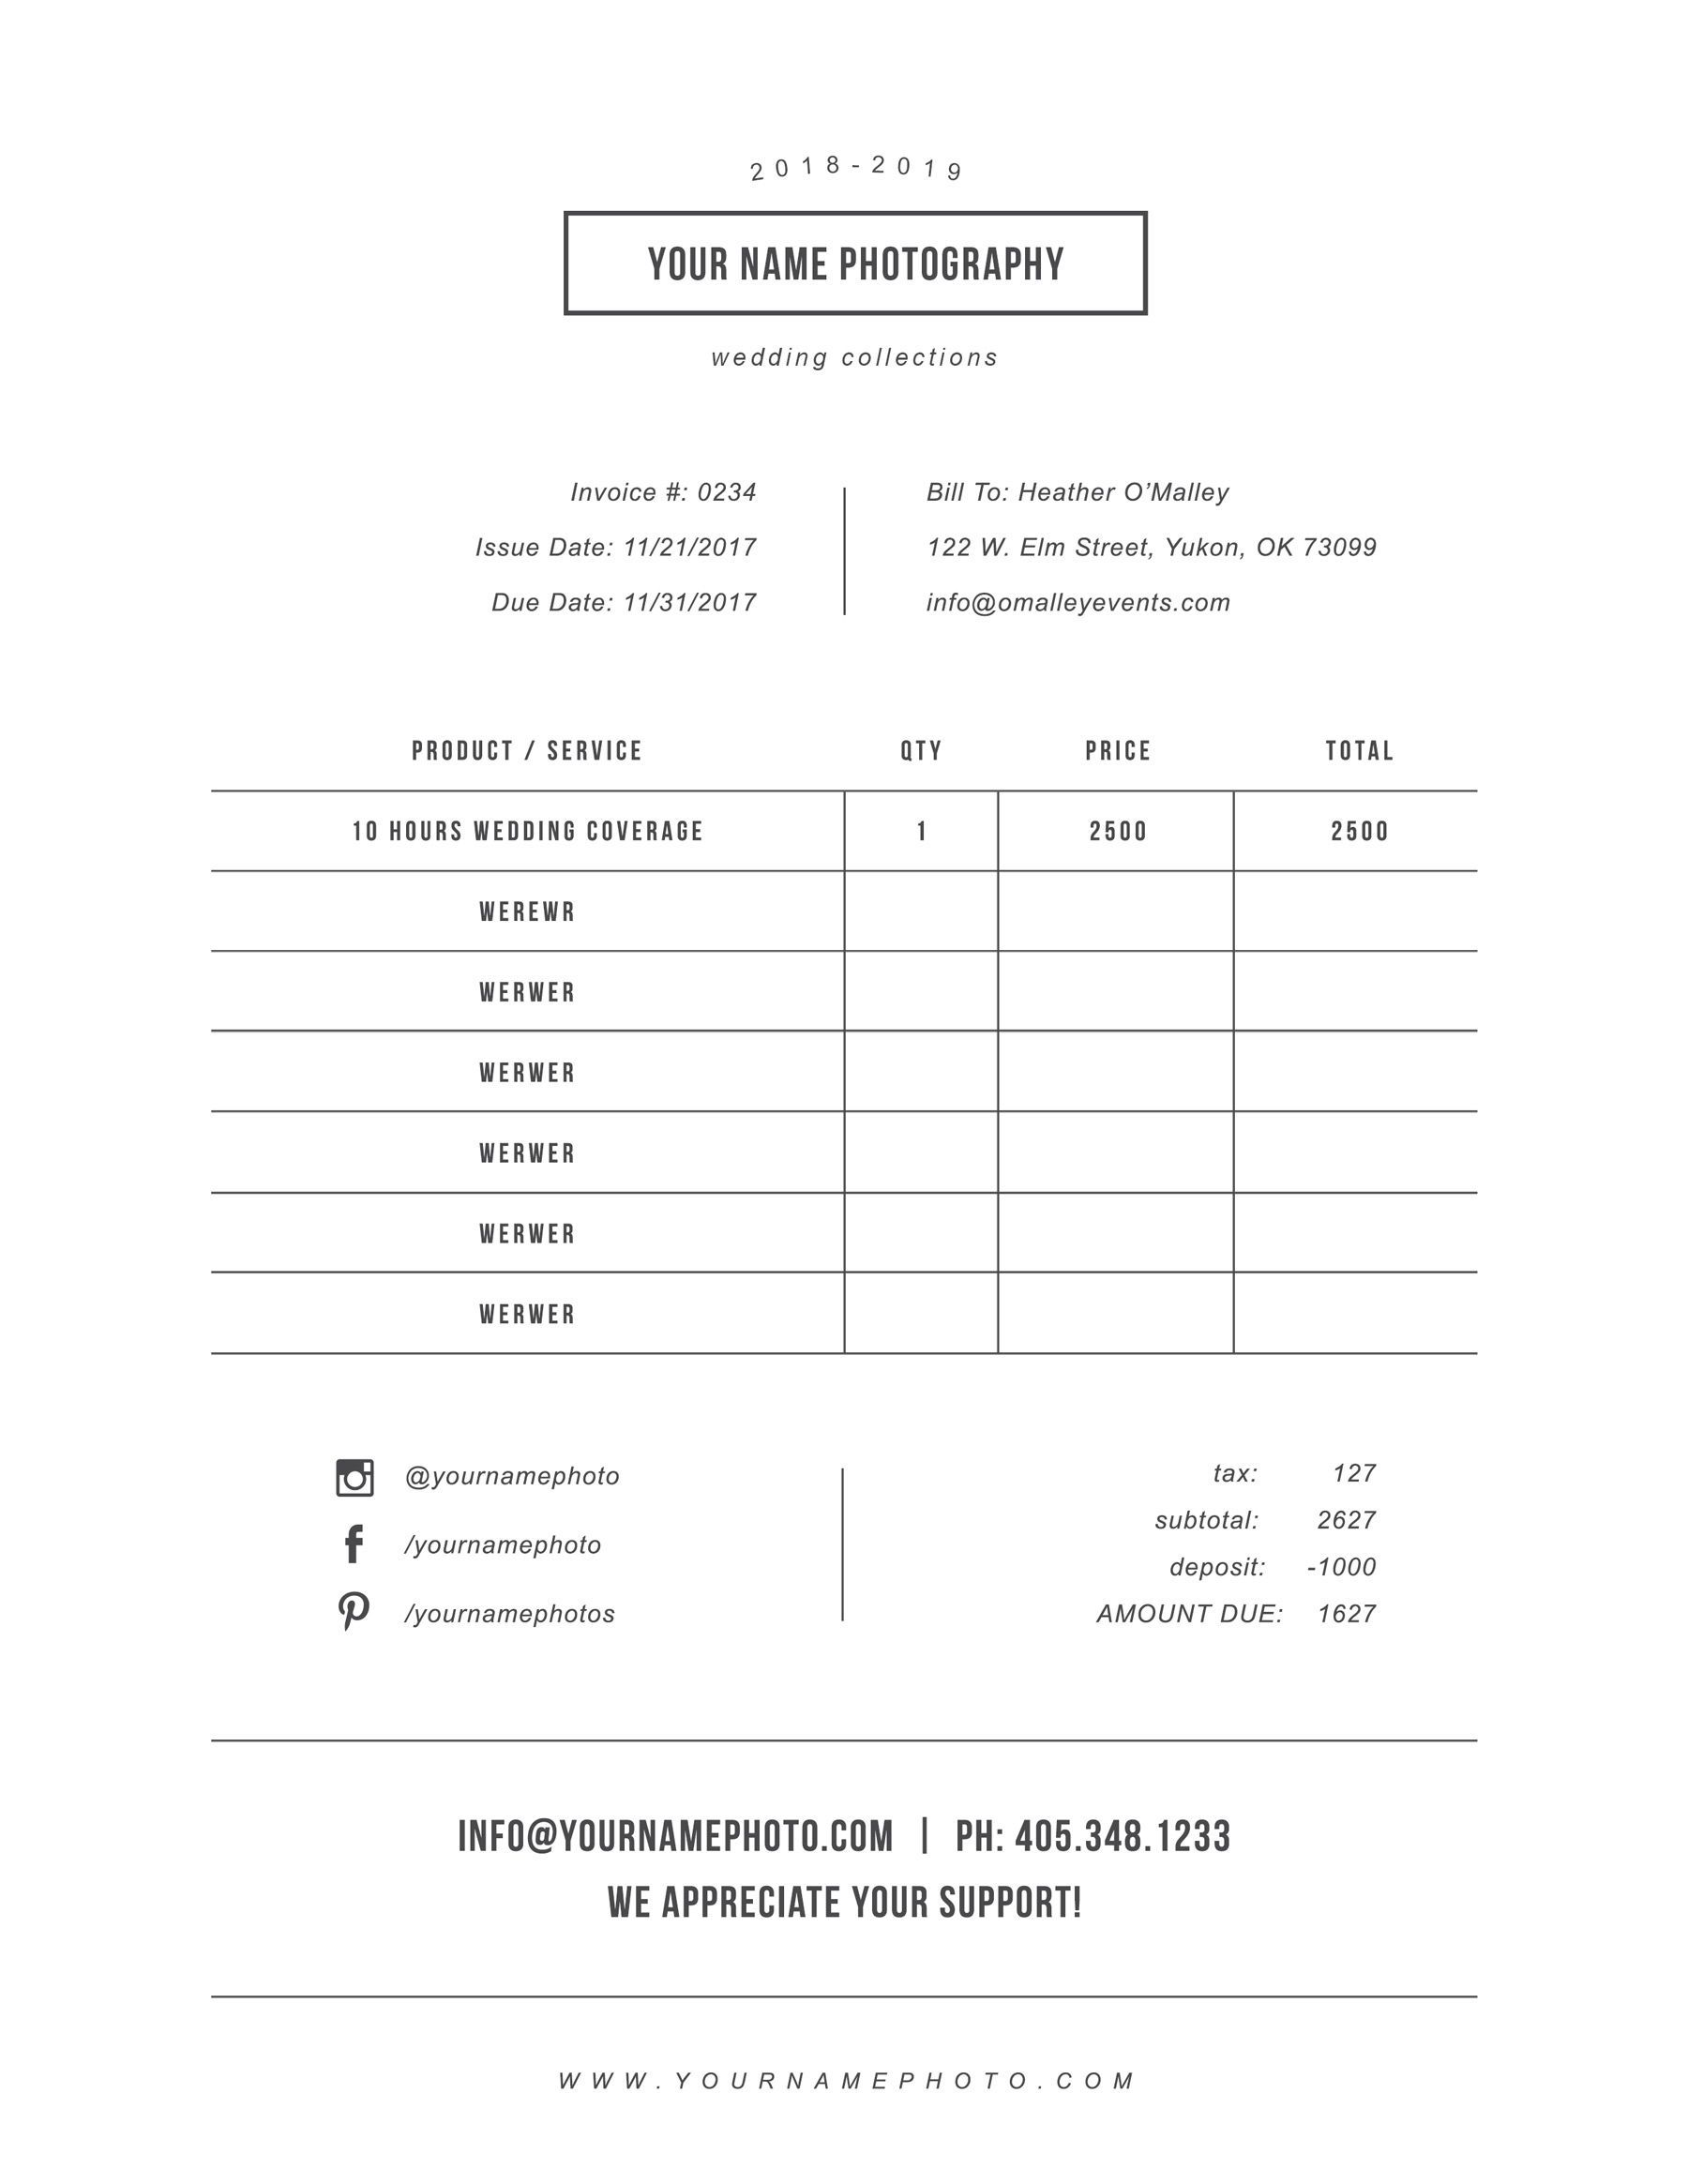 Invoice Templates For Photographers Photography Customizable Invoices Photography Invoice Photography Invoice Template Invoice Design